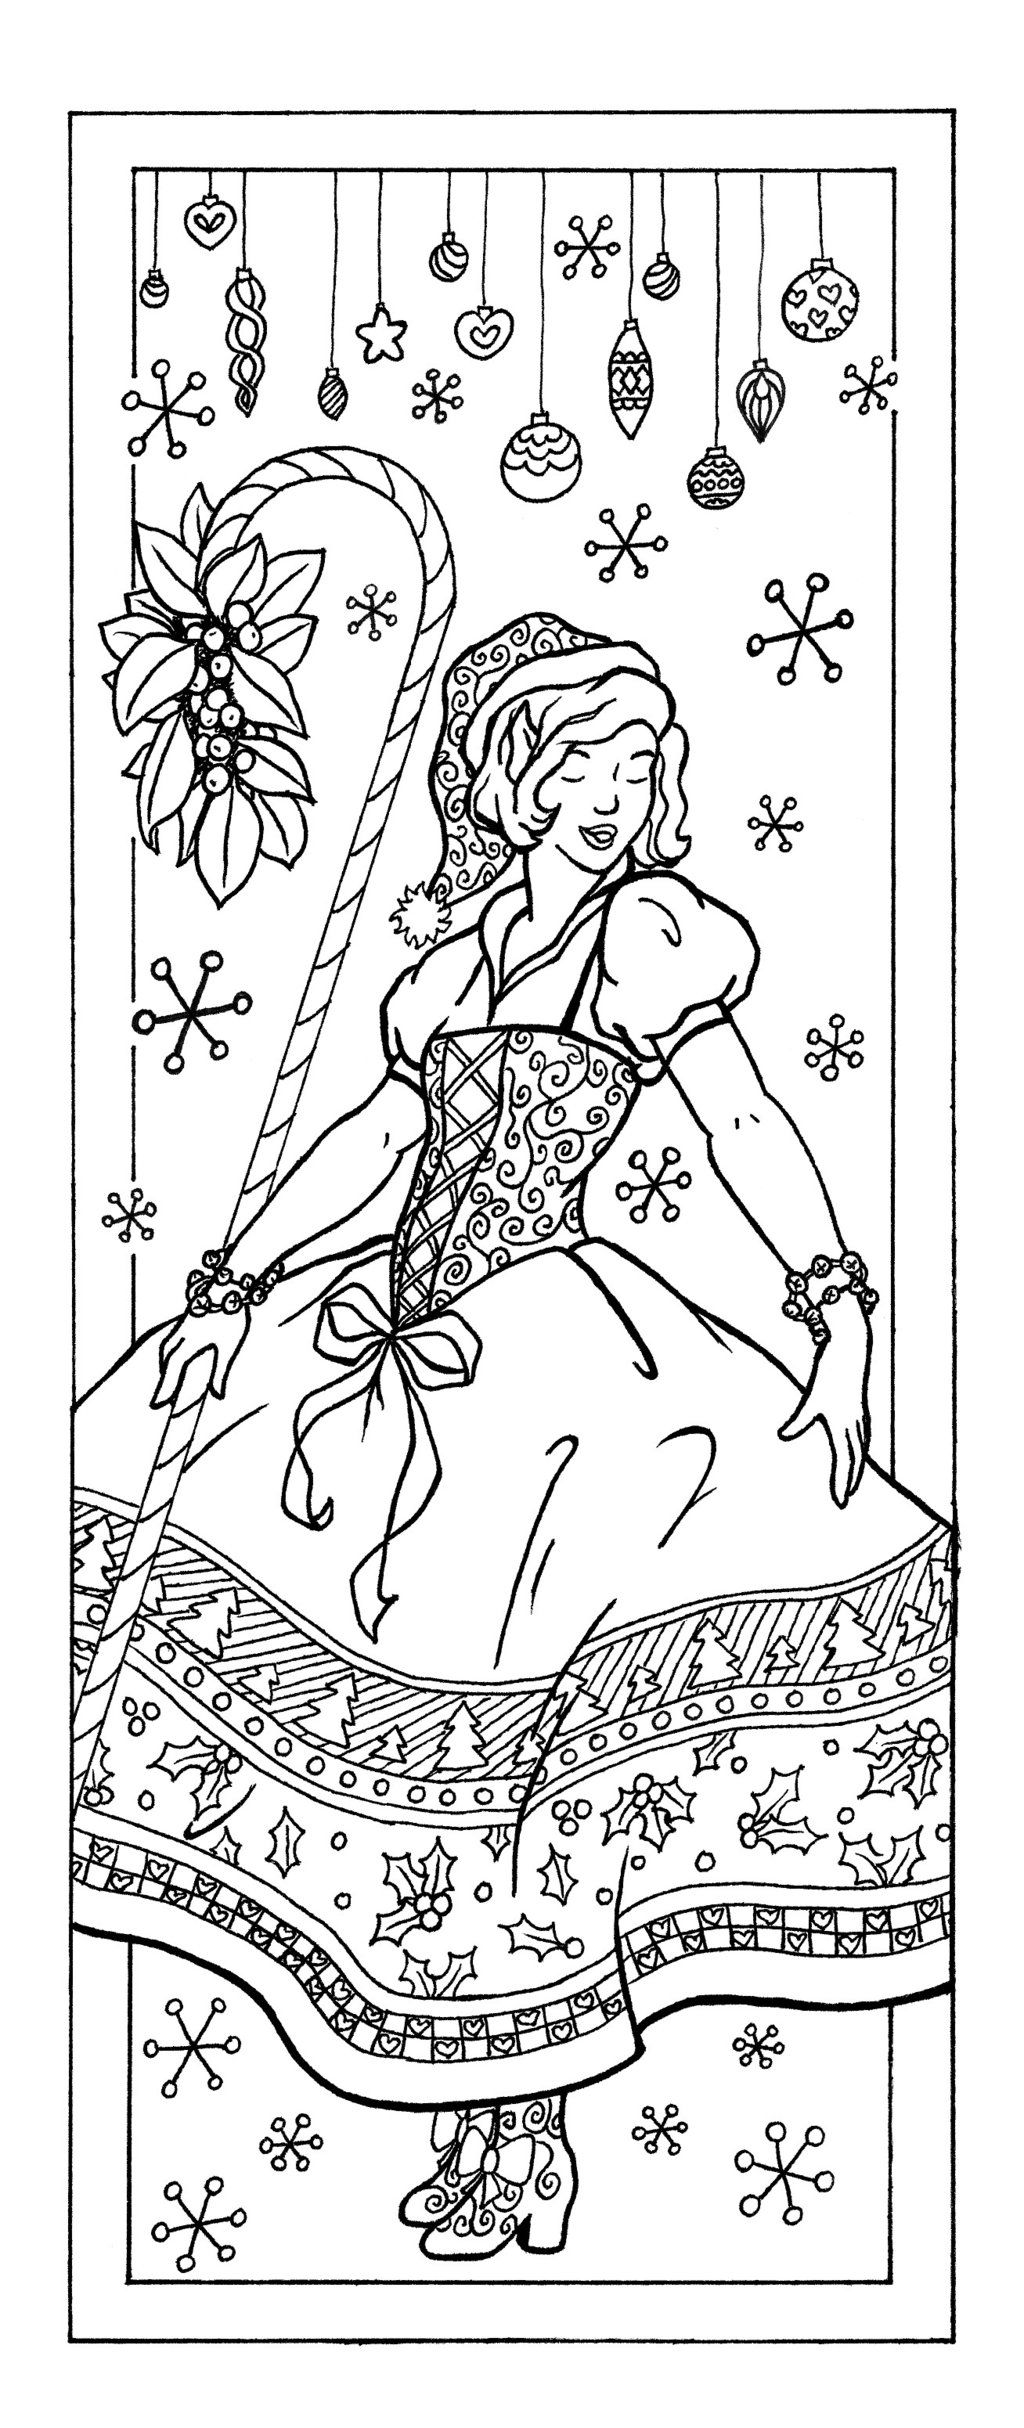 Christmas Elf Coloring Page bookmark Fits one half sheet of paper